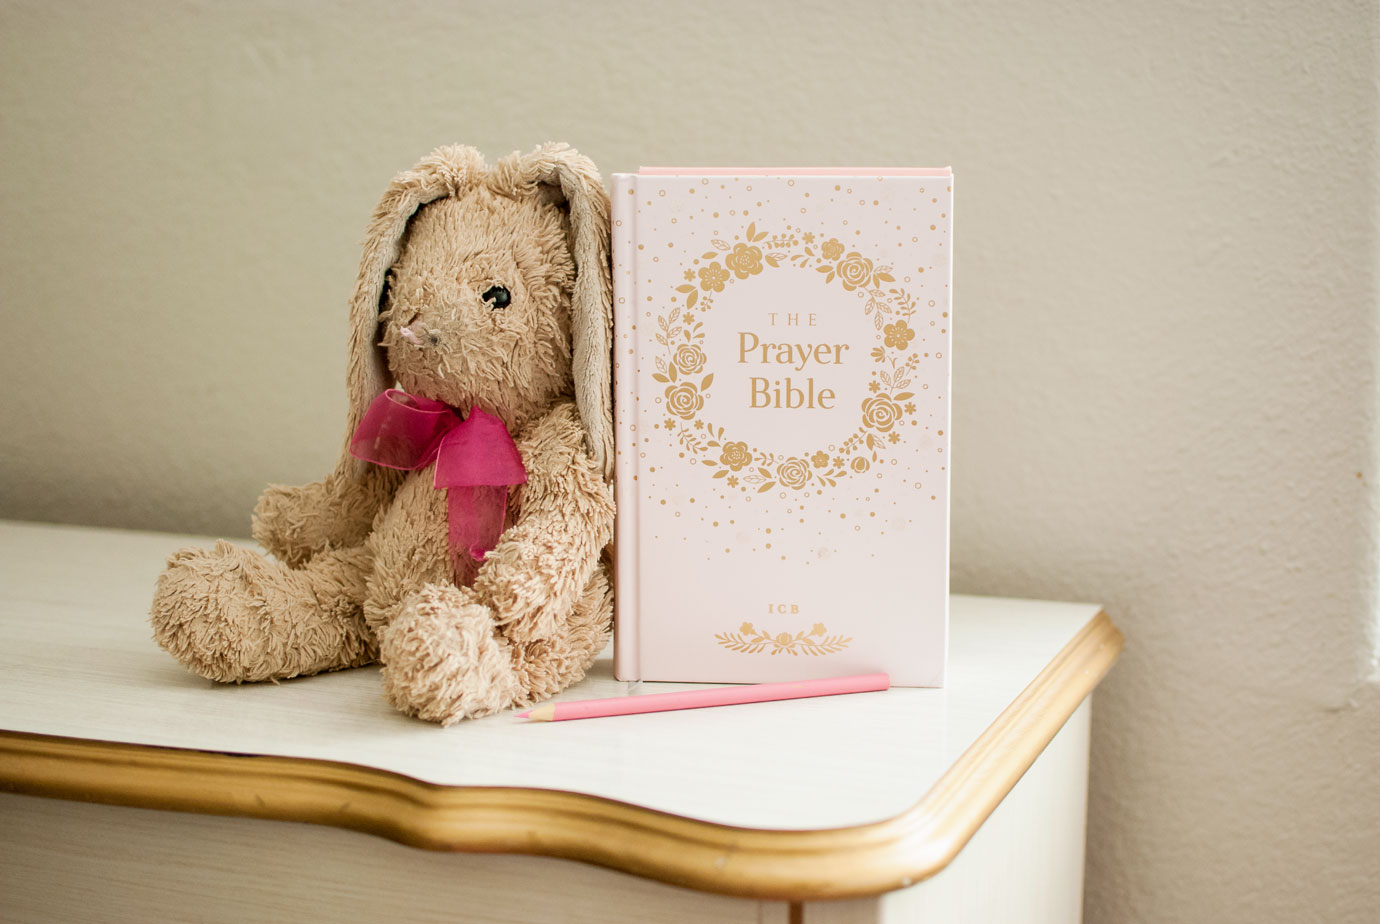 ICB Prayer Bible For Children Review and Giveaway #ICBPrayerBible